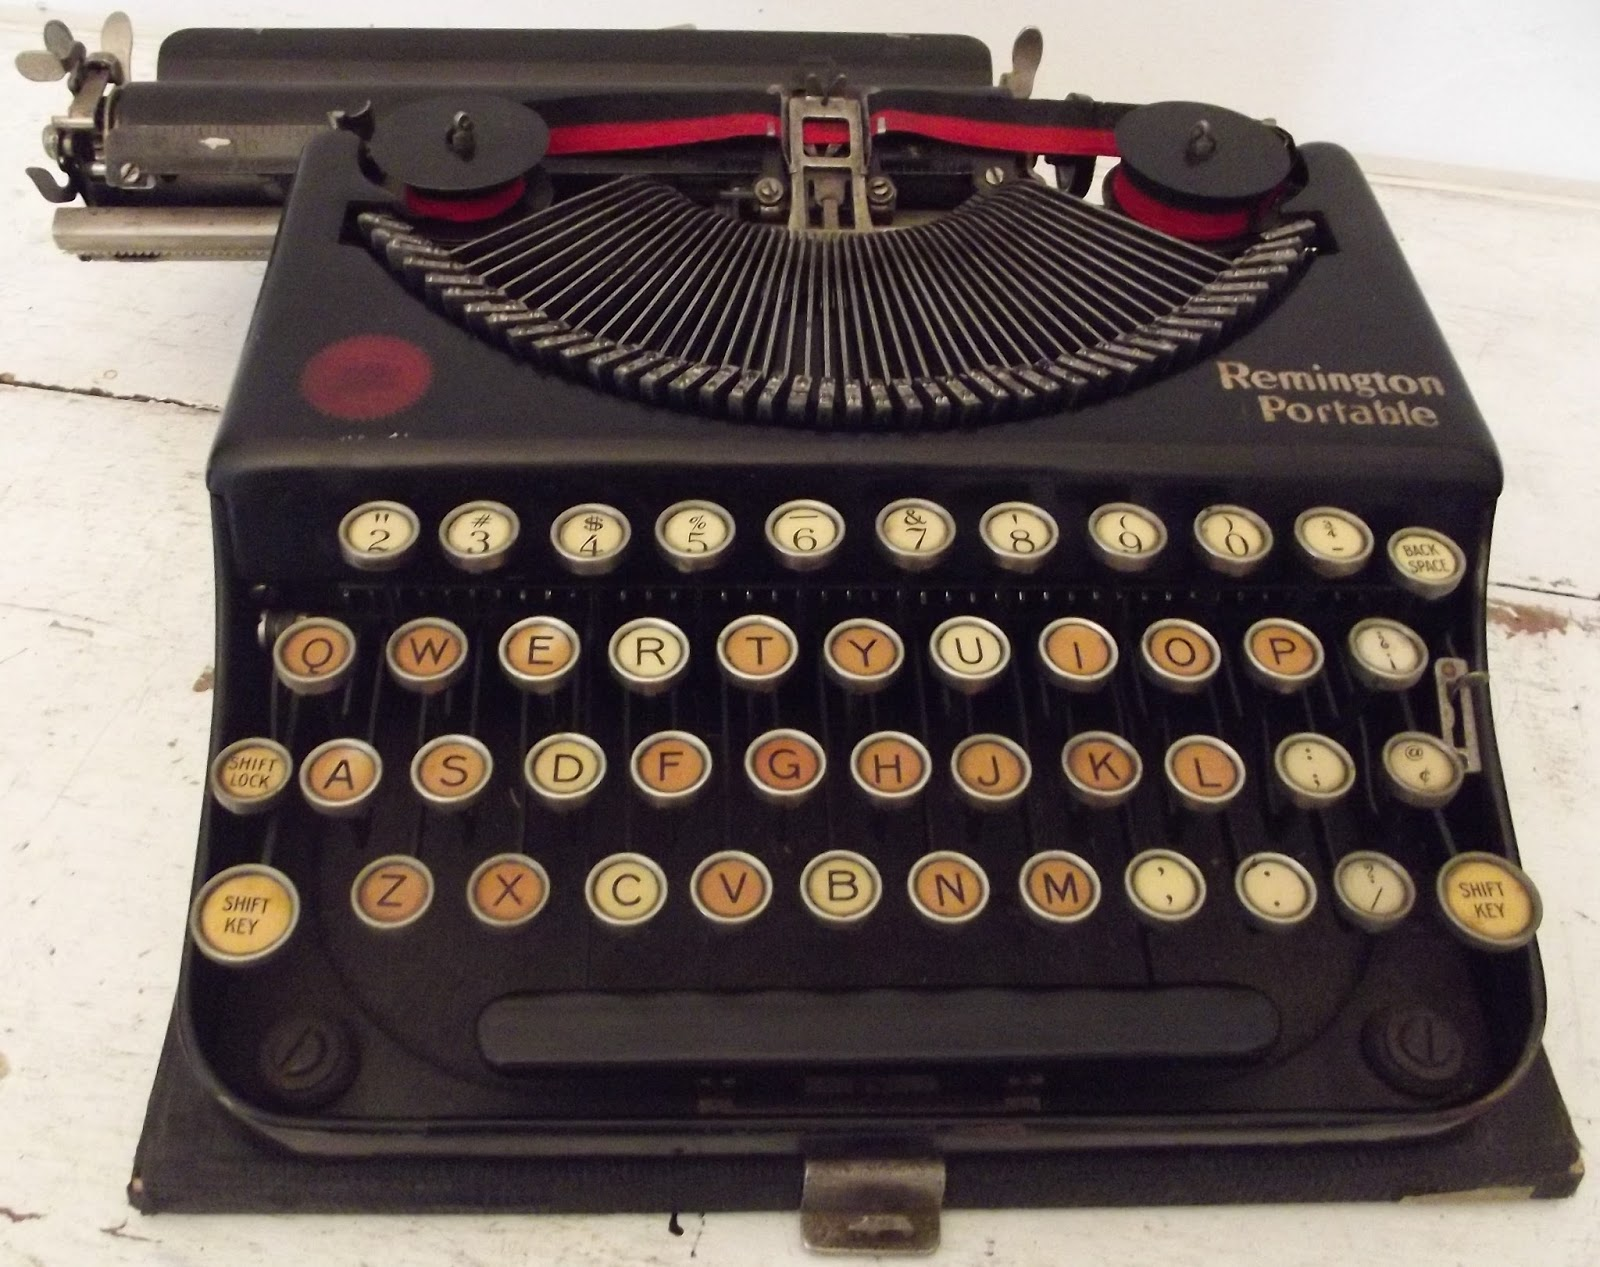 machine ecrire remington portable collector rare 1930 typewriter. Black Bedroom Furniture Sets. Home Design Ideas